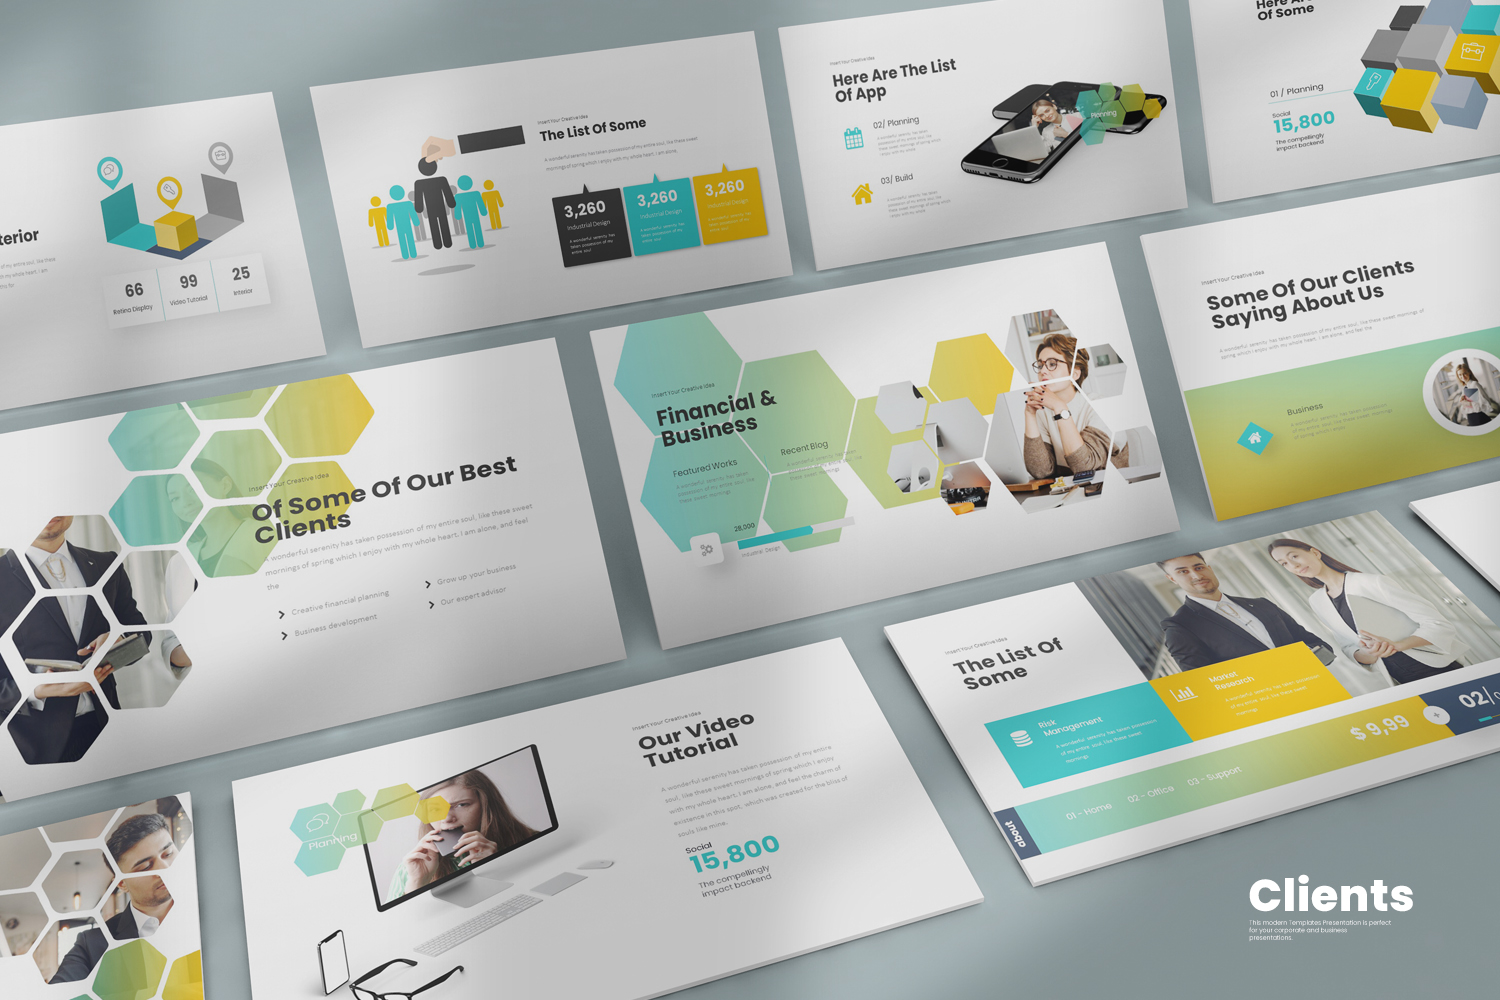 Clients Presentation PowerPoint template